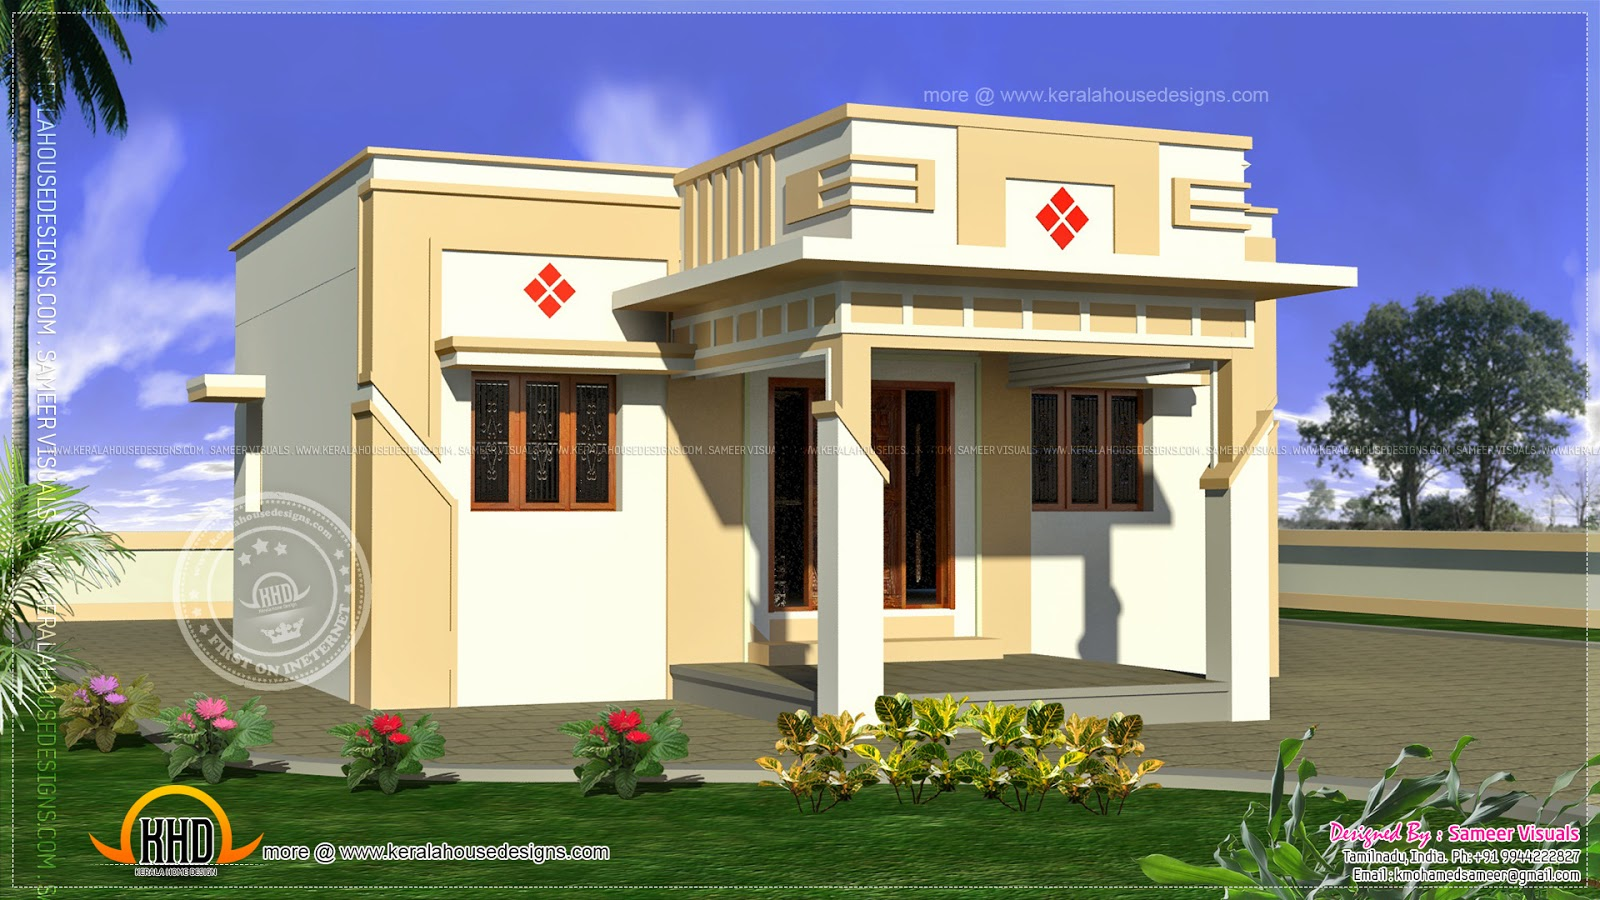 Home construction low cost home construction in kerala for Inexpensive home construction